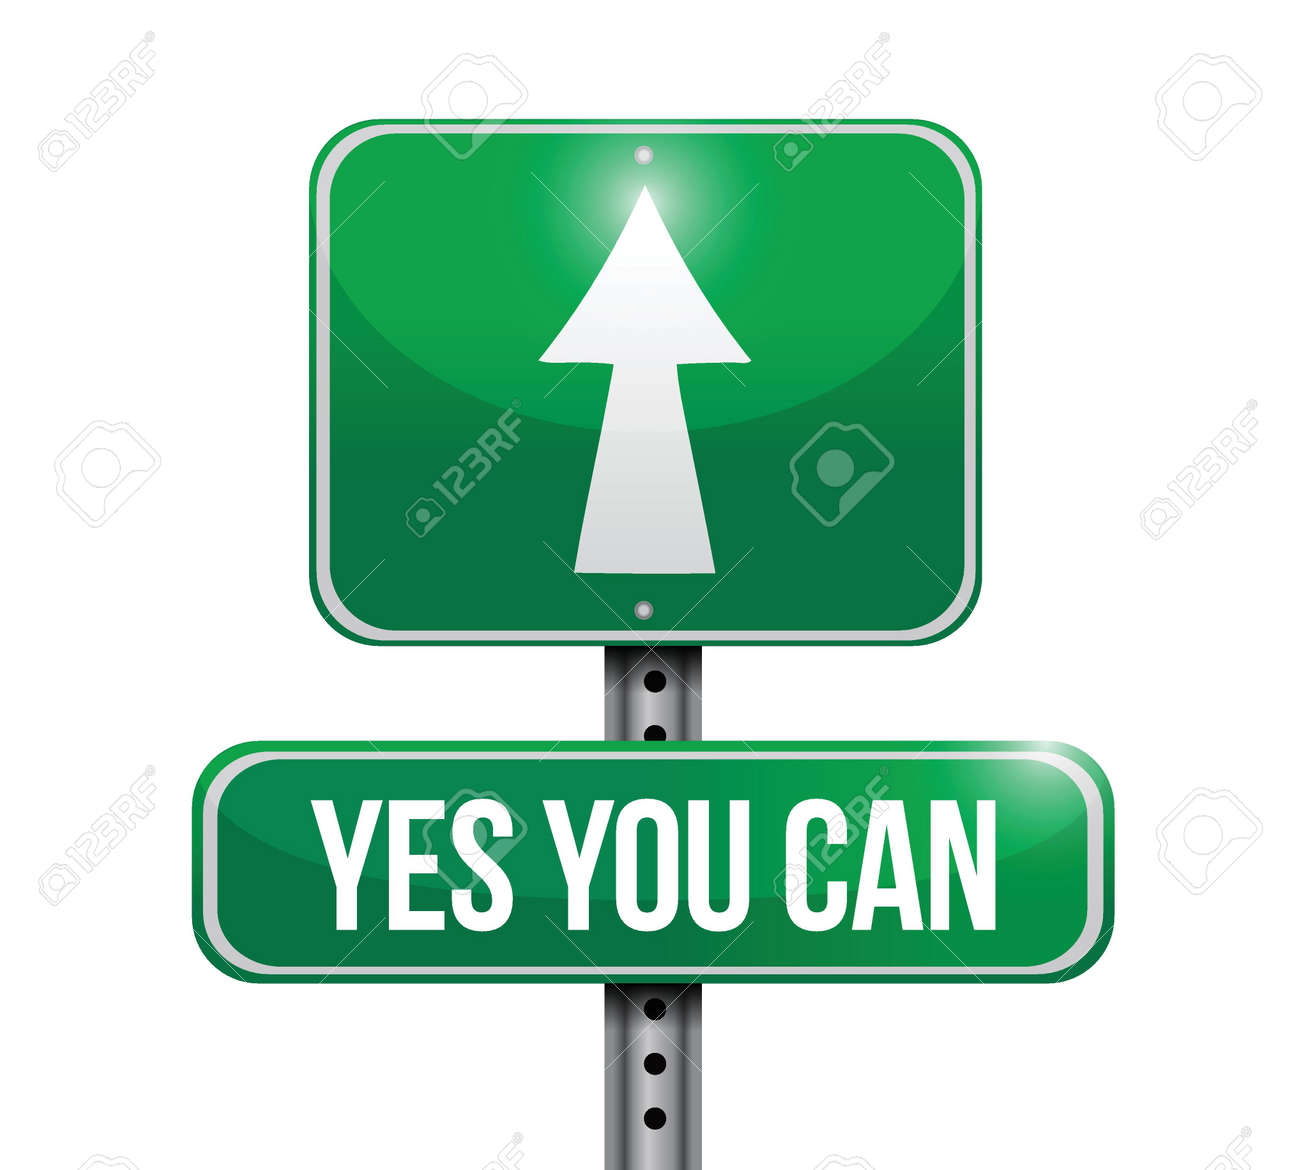 yes you can road sign illustration design over a white background Stock Vector - 22035705